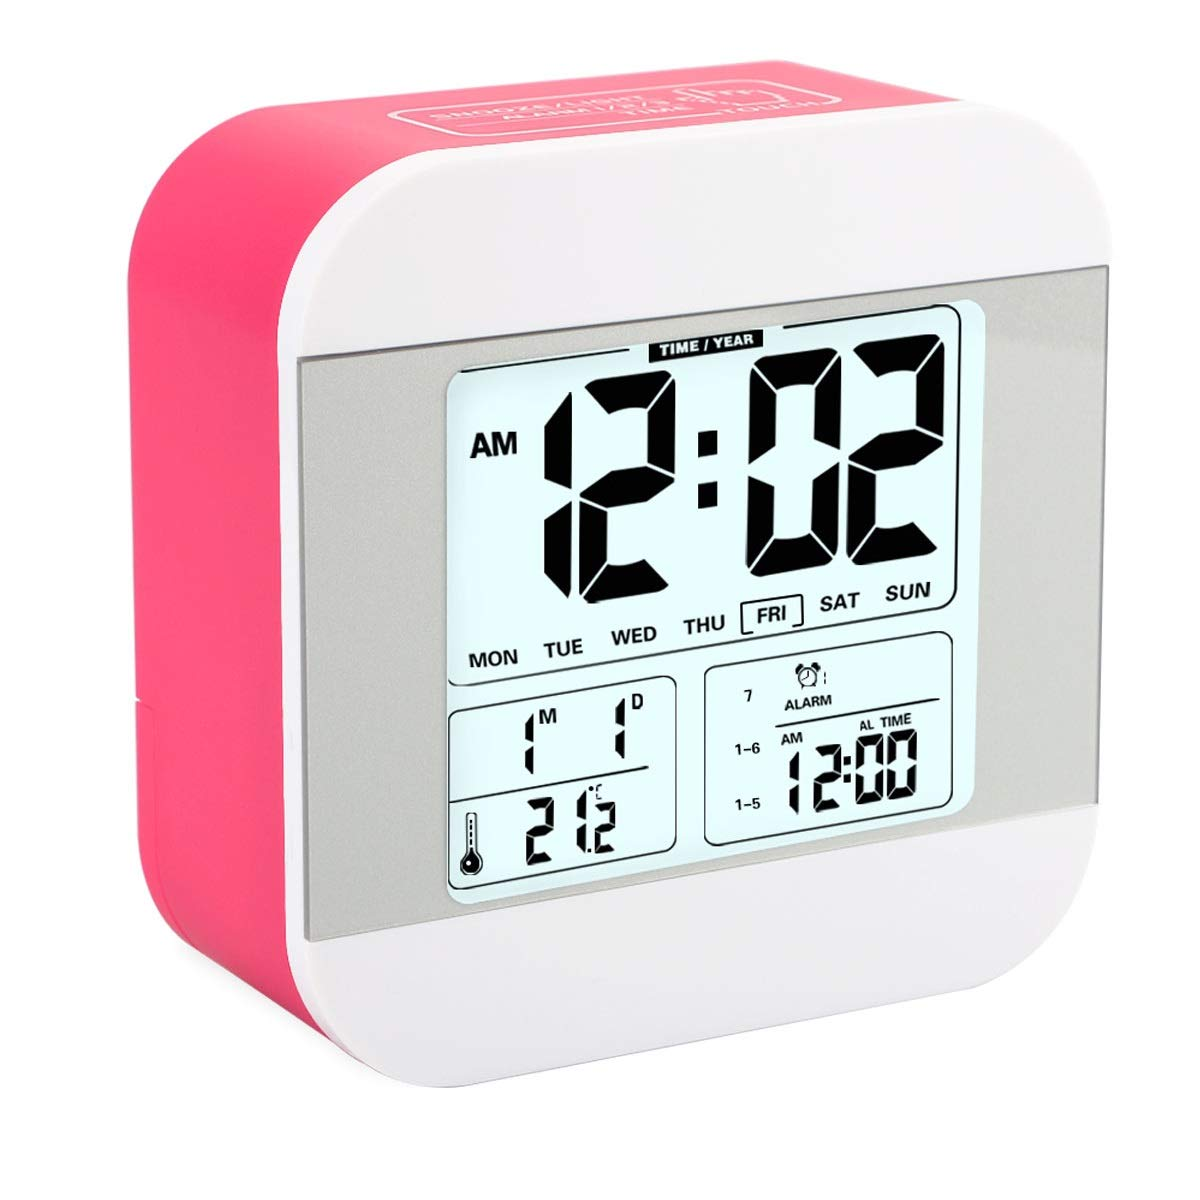 Aitey Alarm Clock for Kids, Talking Alarm Clock with Large Digital Display, 3 Alarms, 7 Rings, Snooze, Optional Weekday Mode and Low Light Sensor Technology for Bedrooms and Office Desk (Red)